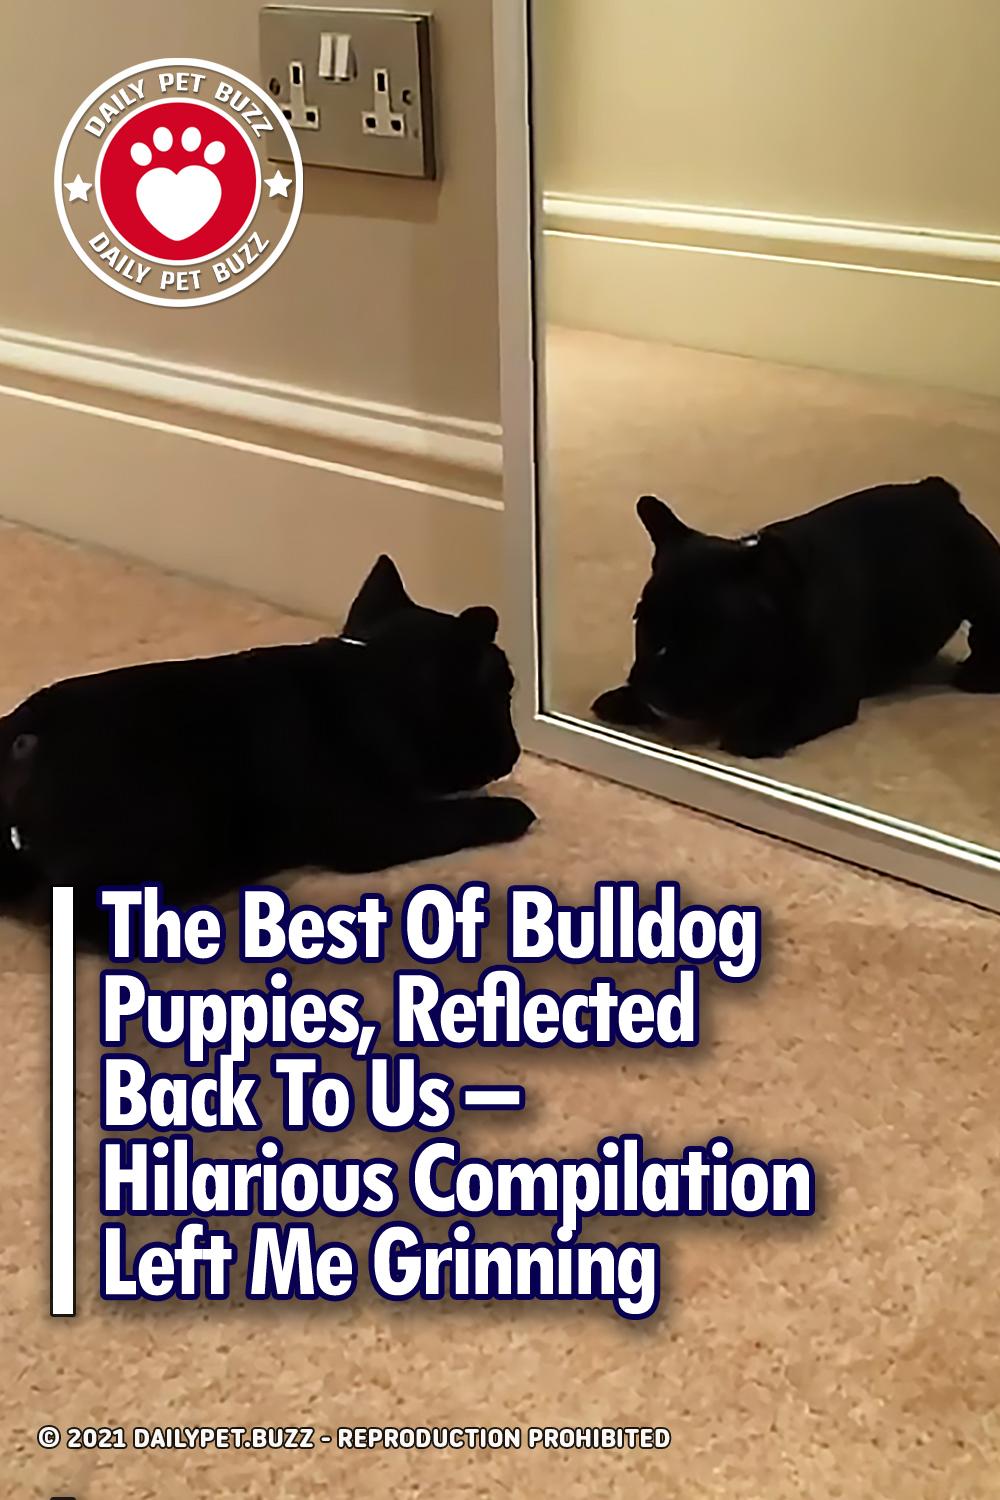 The Best Of Bulldog Puppies, Reflected Back To Us – Hilarious Compilation Left Me Grinning